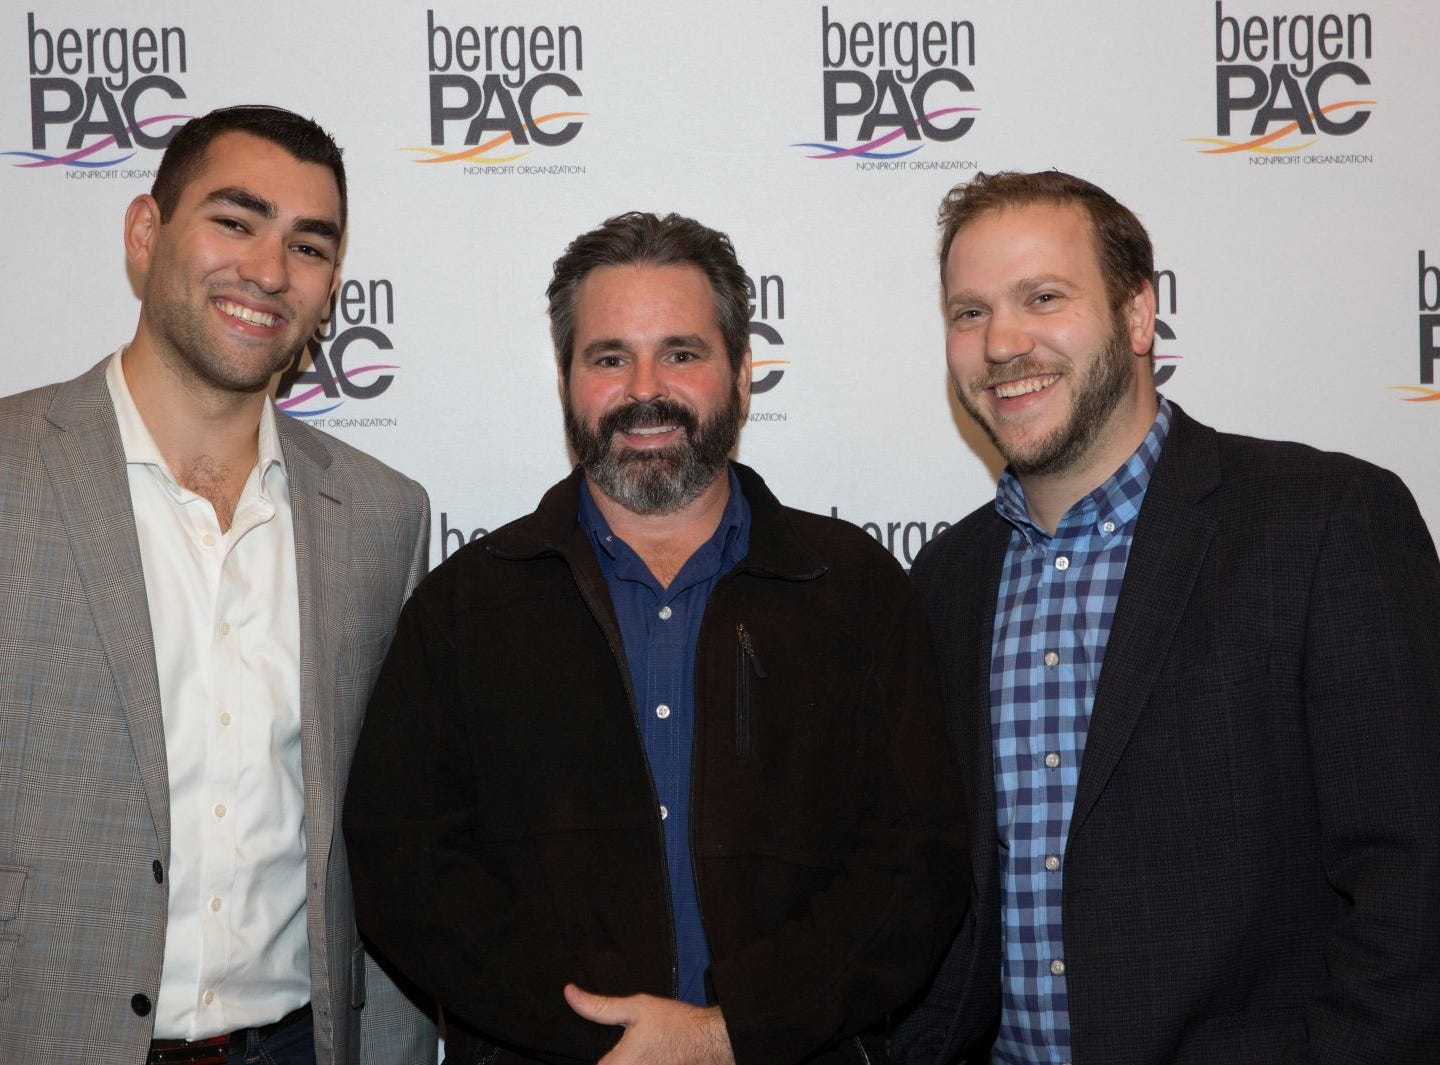 Joel Bruckner, BrianPowell, Josh Abergel. BergenPAC held its annual fall gala featuring John Fogerty in Englewood. This year's honoree was Fernando Garip, from Wilmington Trust and M&T Bank. 11/08/2018